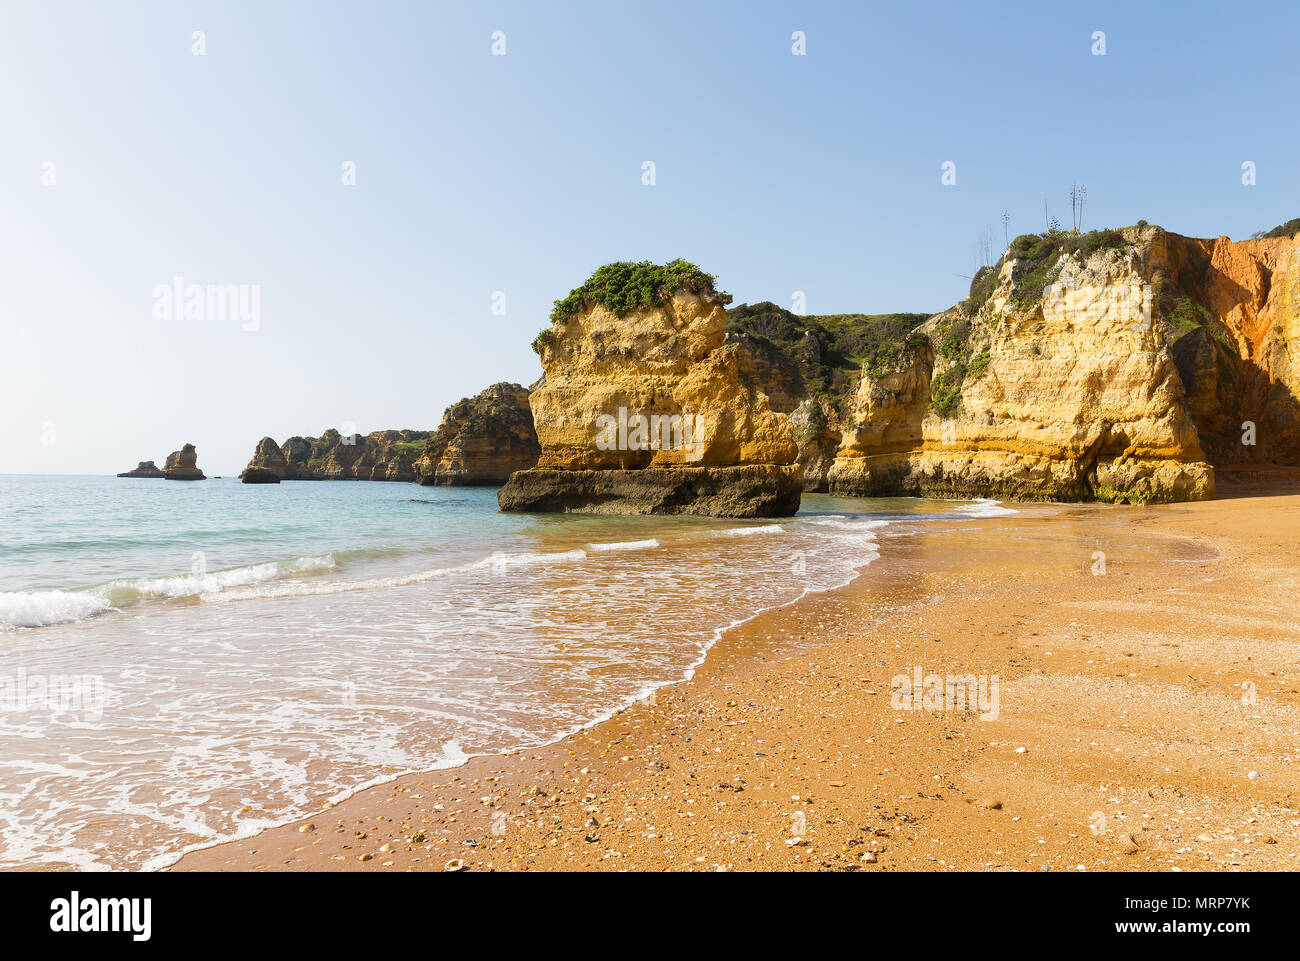 Atlantic sandy beach at sunrise with seashells left by the tide. Waves are rolling among the cliffs under the morning sun in Lagos, Portugal. Stock Photo